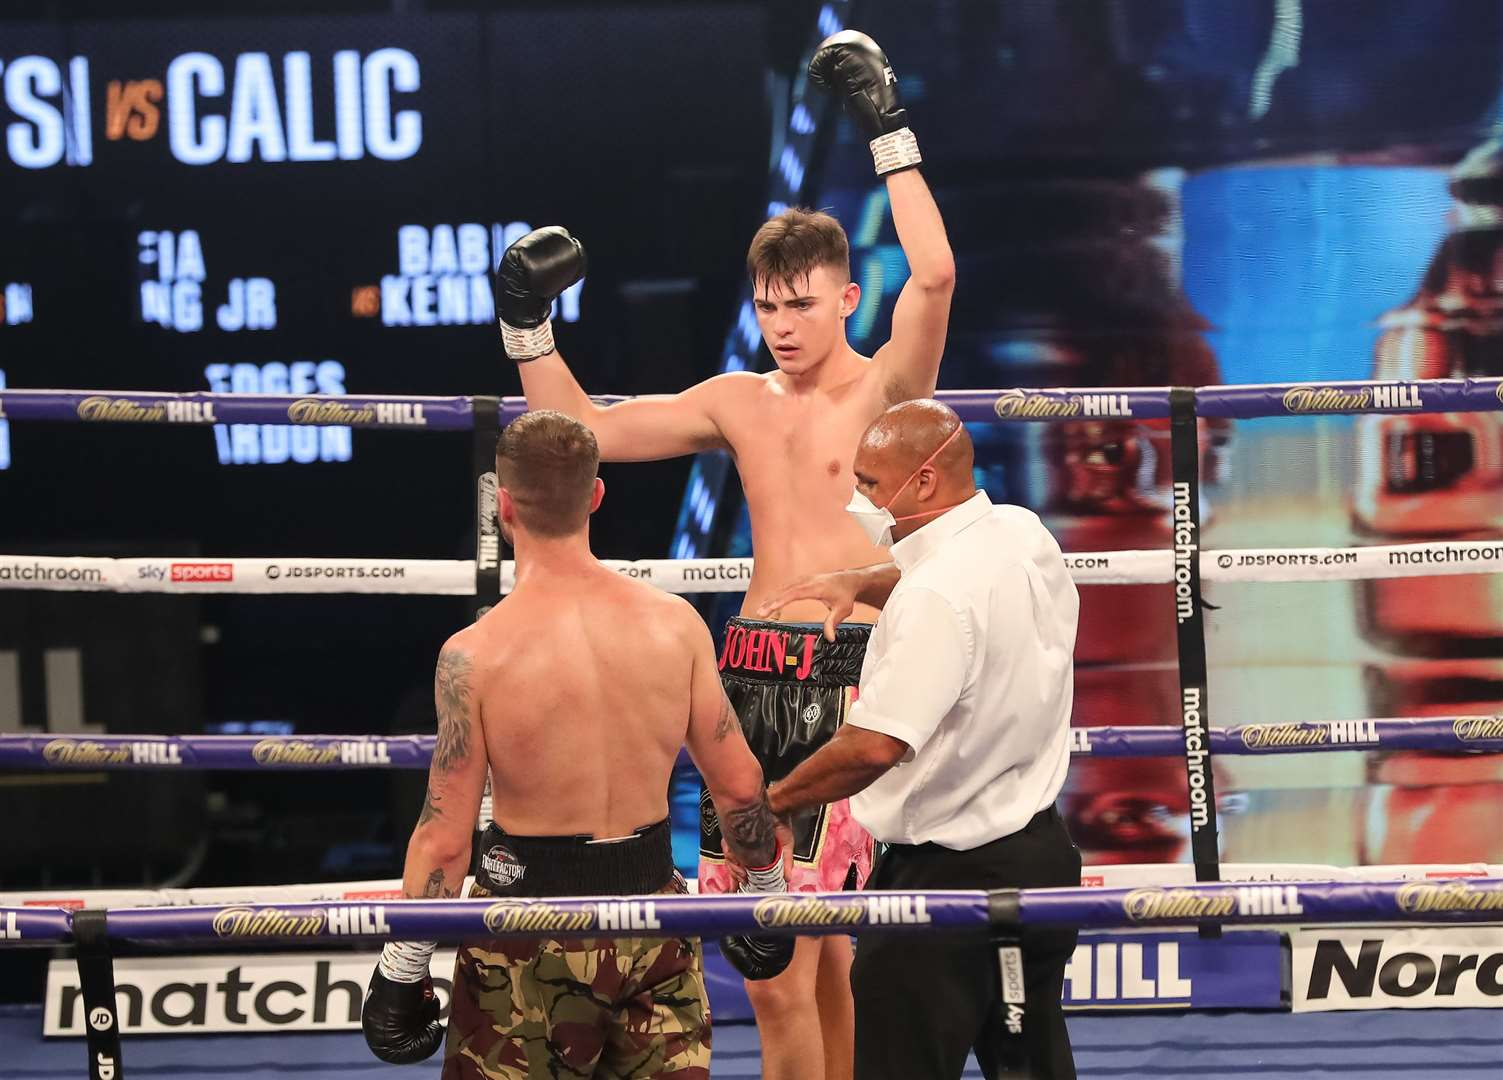 John Hedges beat Jan Ardon on his professional debut. Picture: Mark Robinson/Matchroom Boxing (42549221)